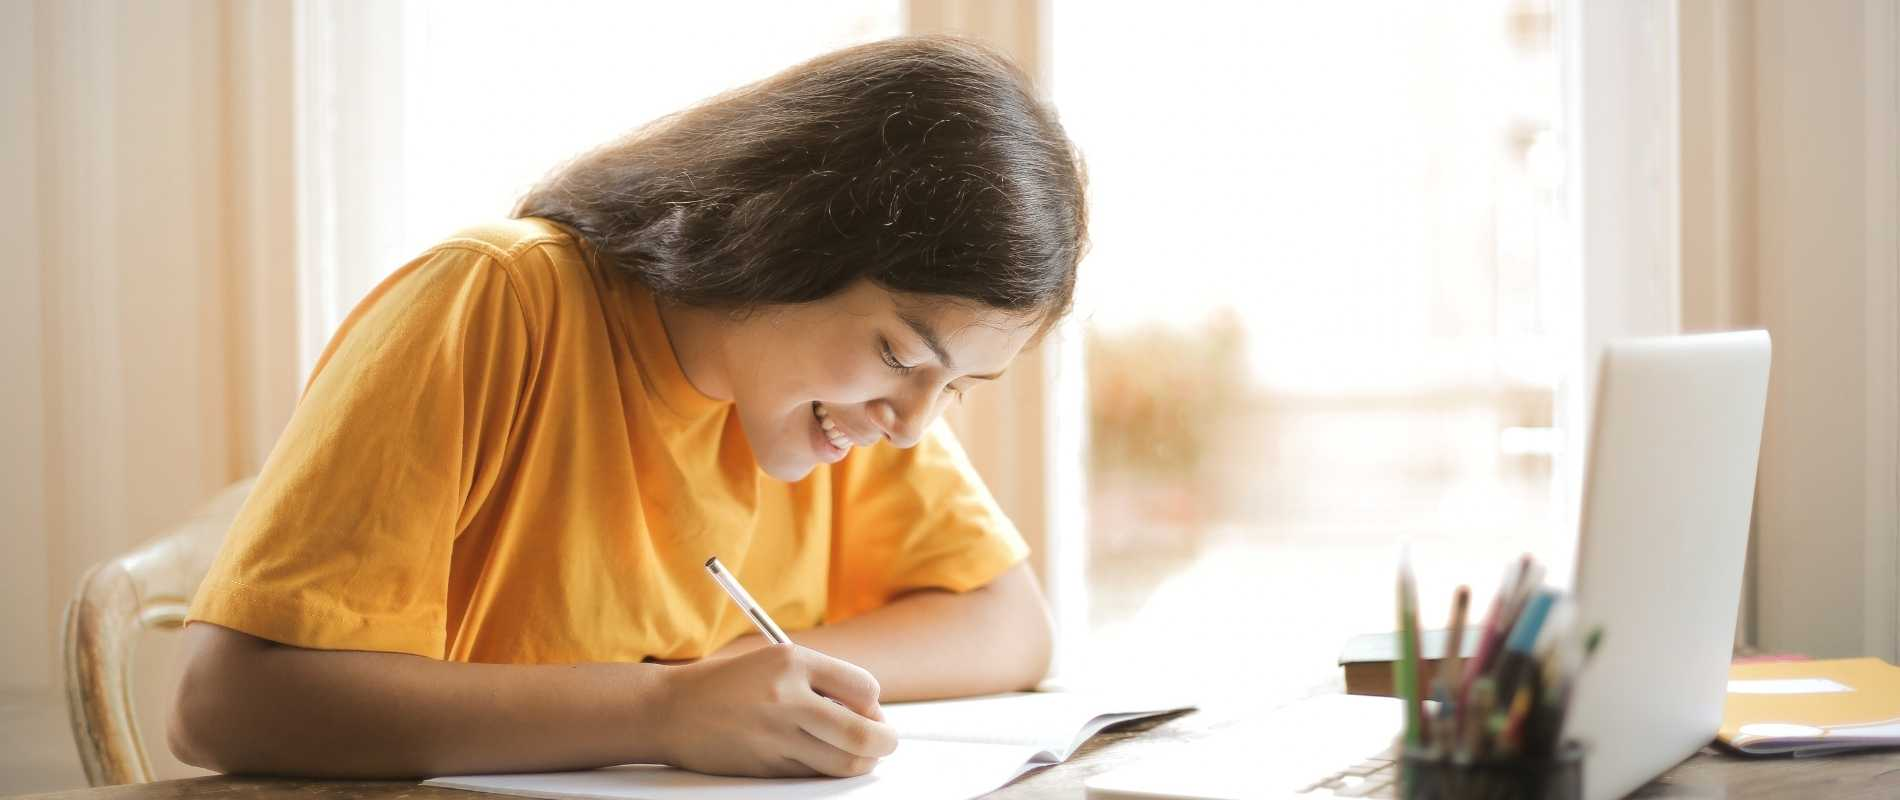 female student writing at desk